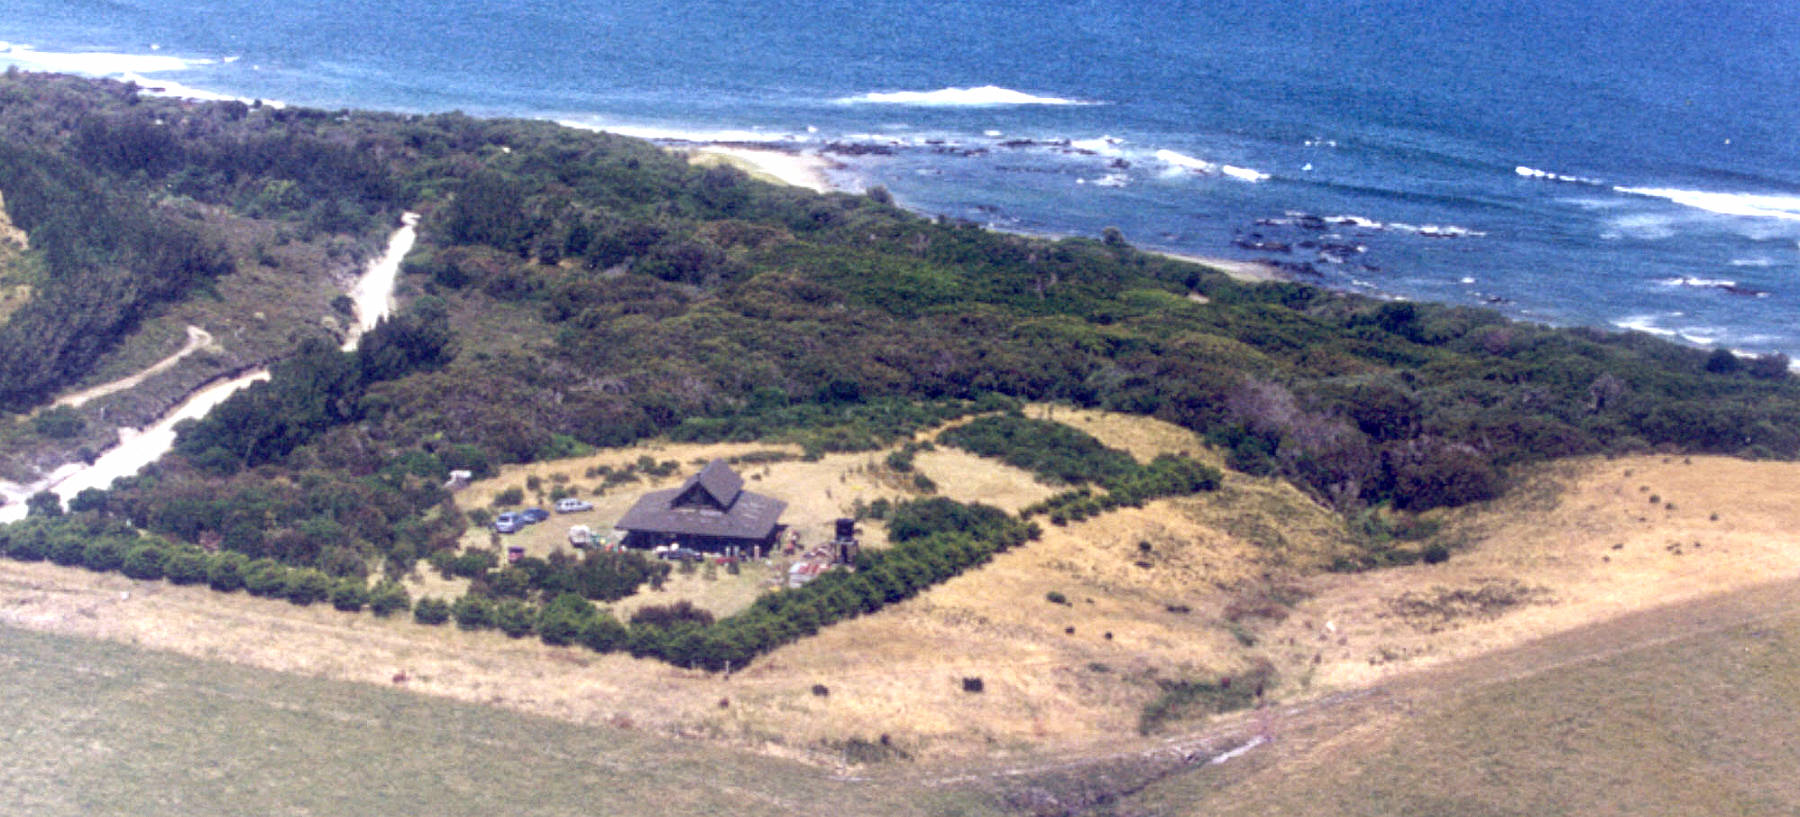 Aerial shot of Wirrega barn, showing Walkerville coastline and beach